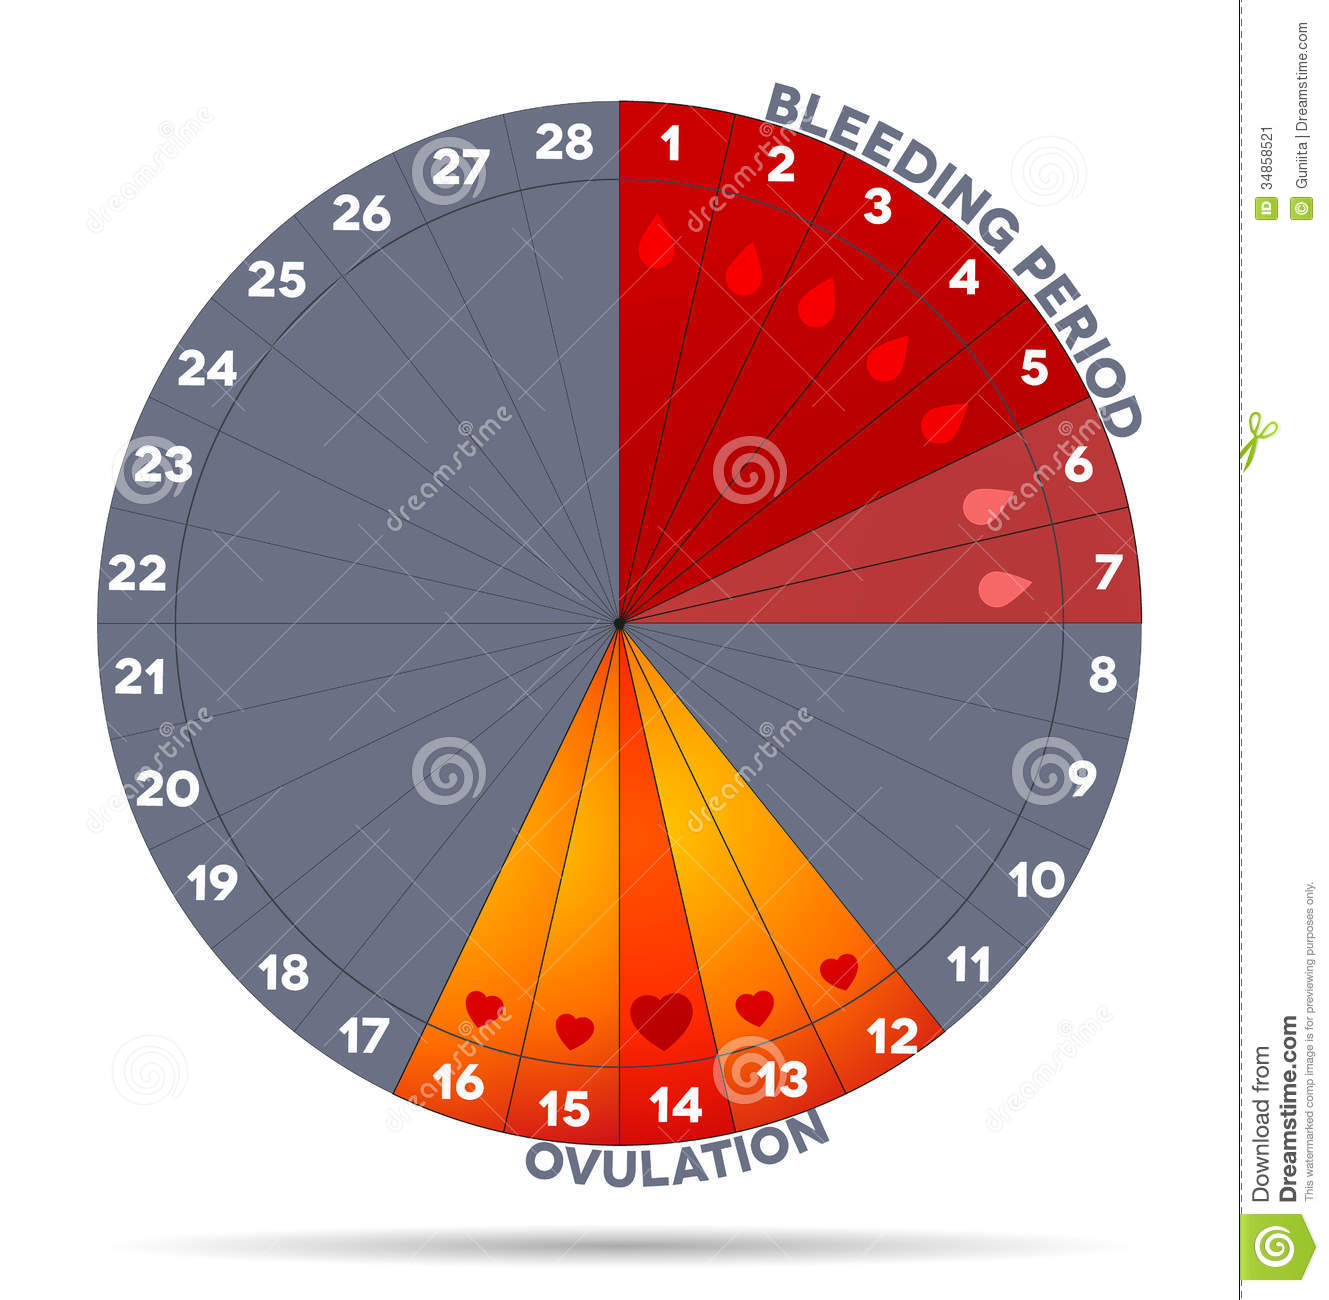 menstrual cycle diagram with ovulation four way light switch female graphic stock image 34858521